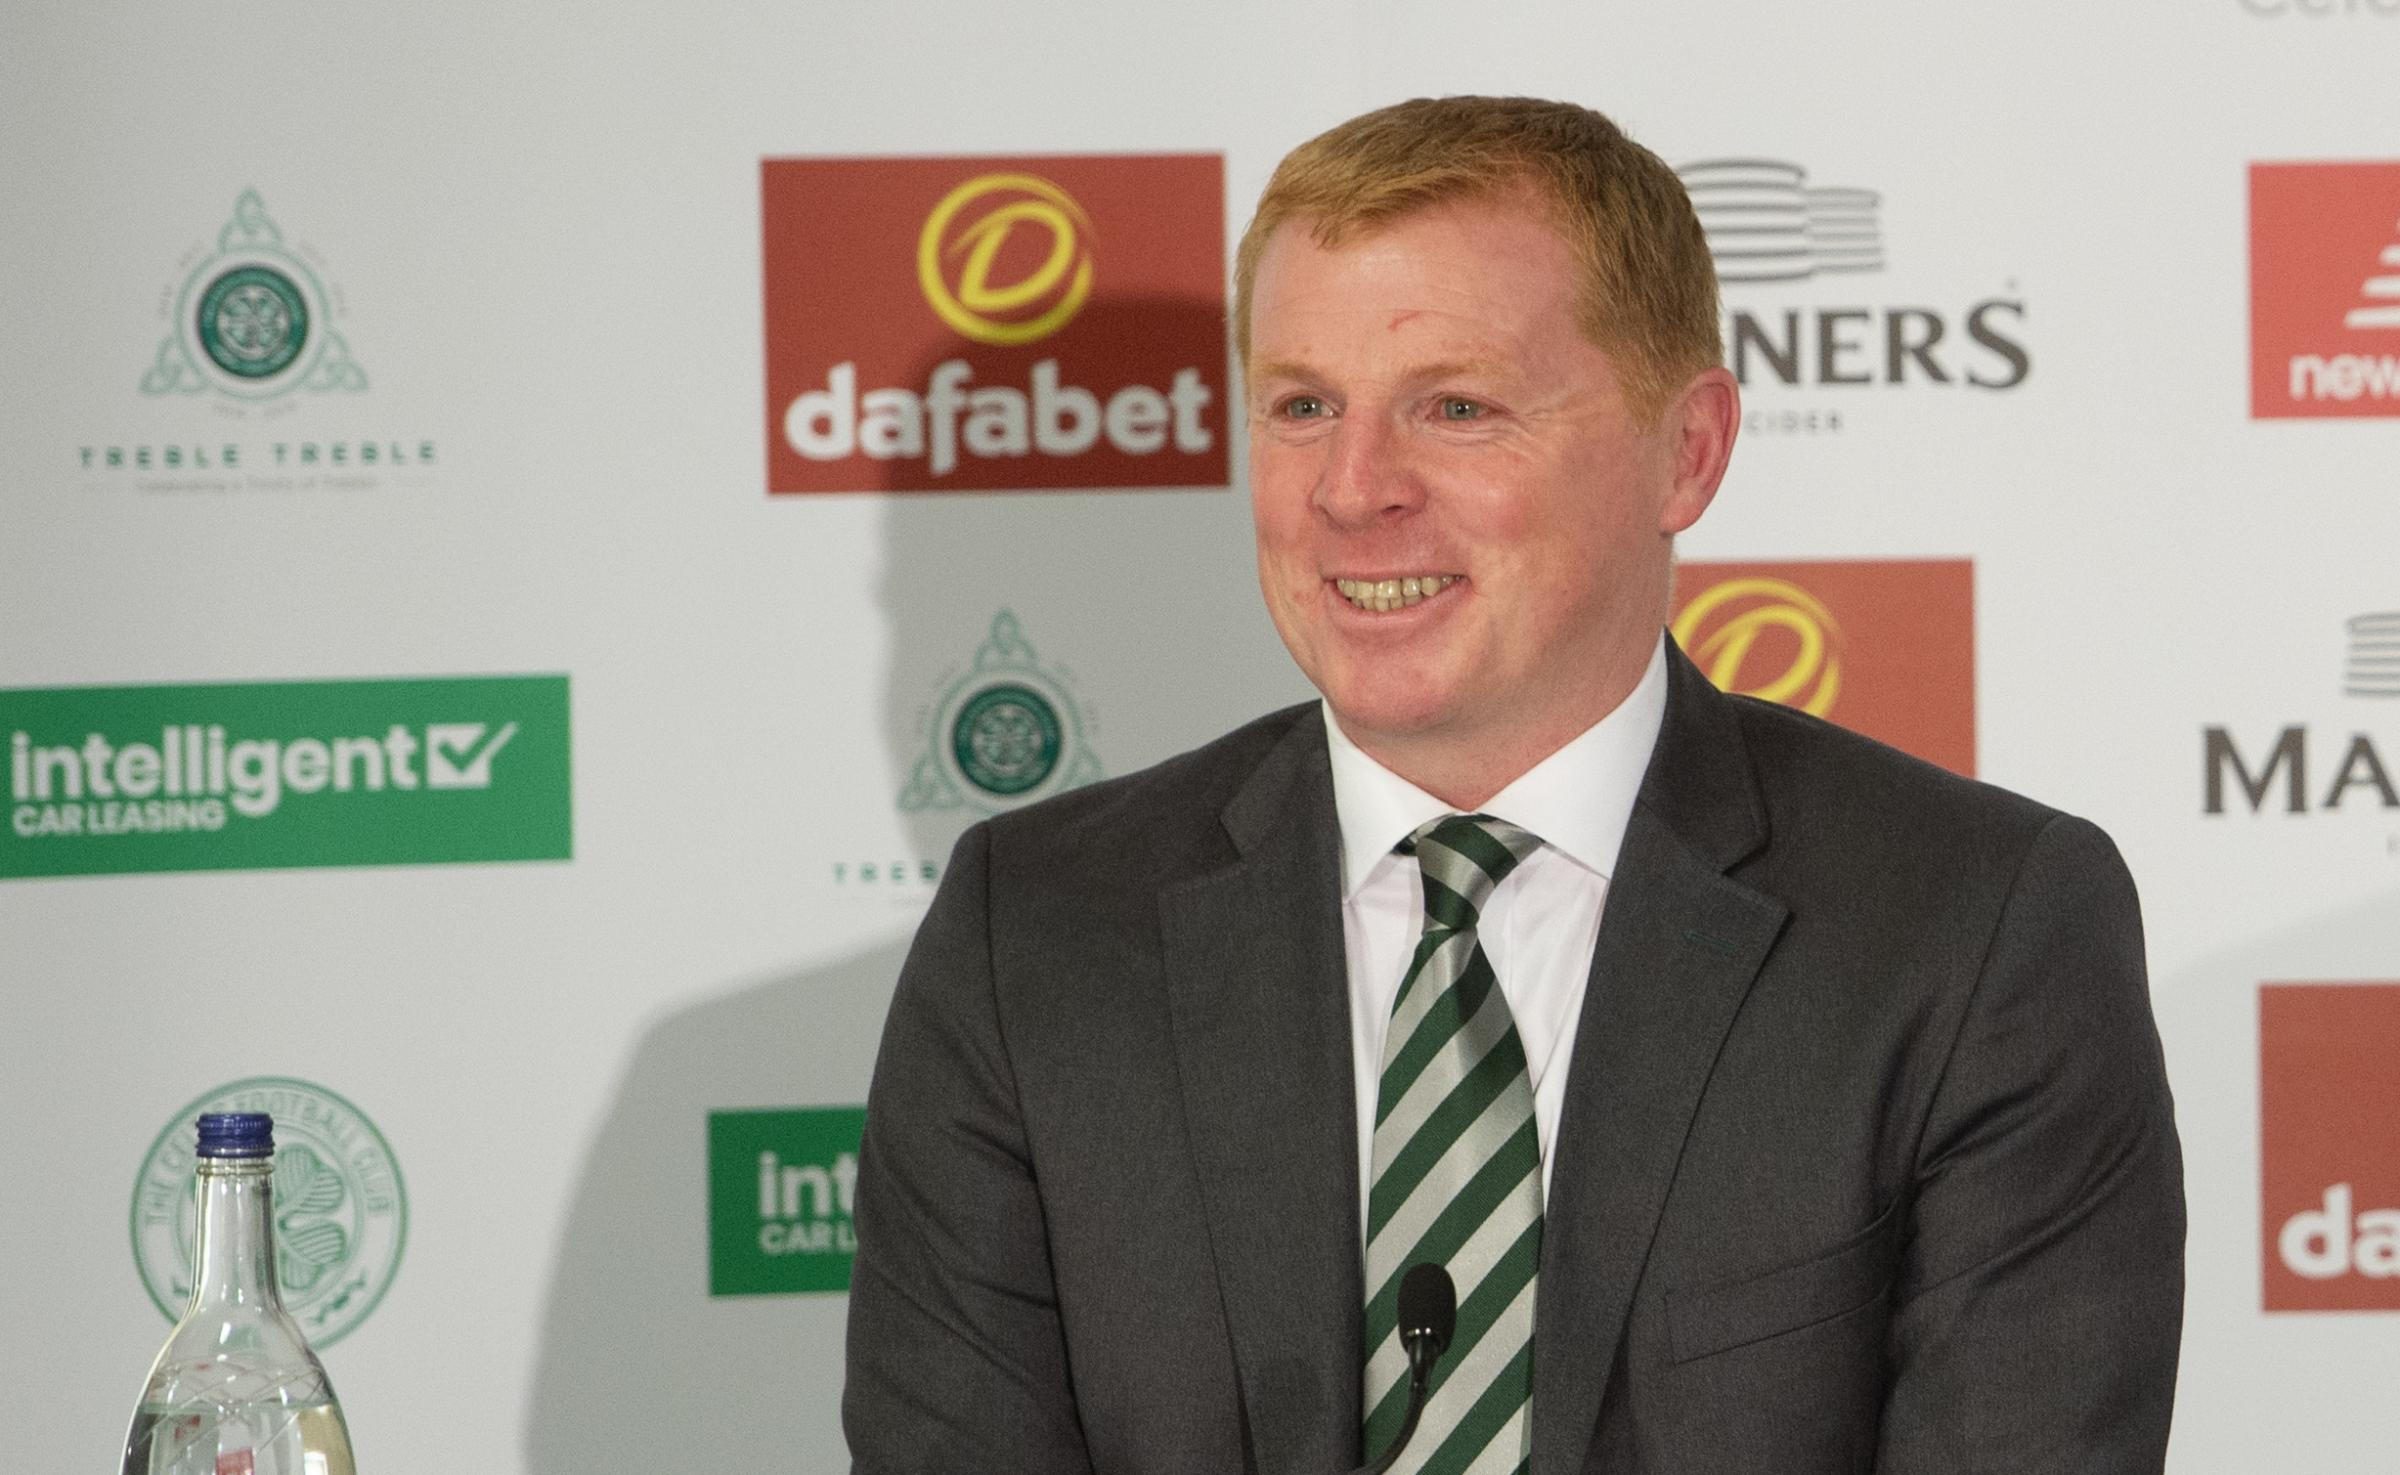 Neil Lennon believes that he now has the temperament to handle the Celtic job after mellowing with age